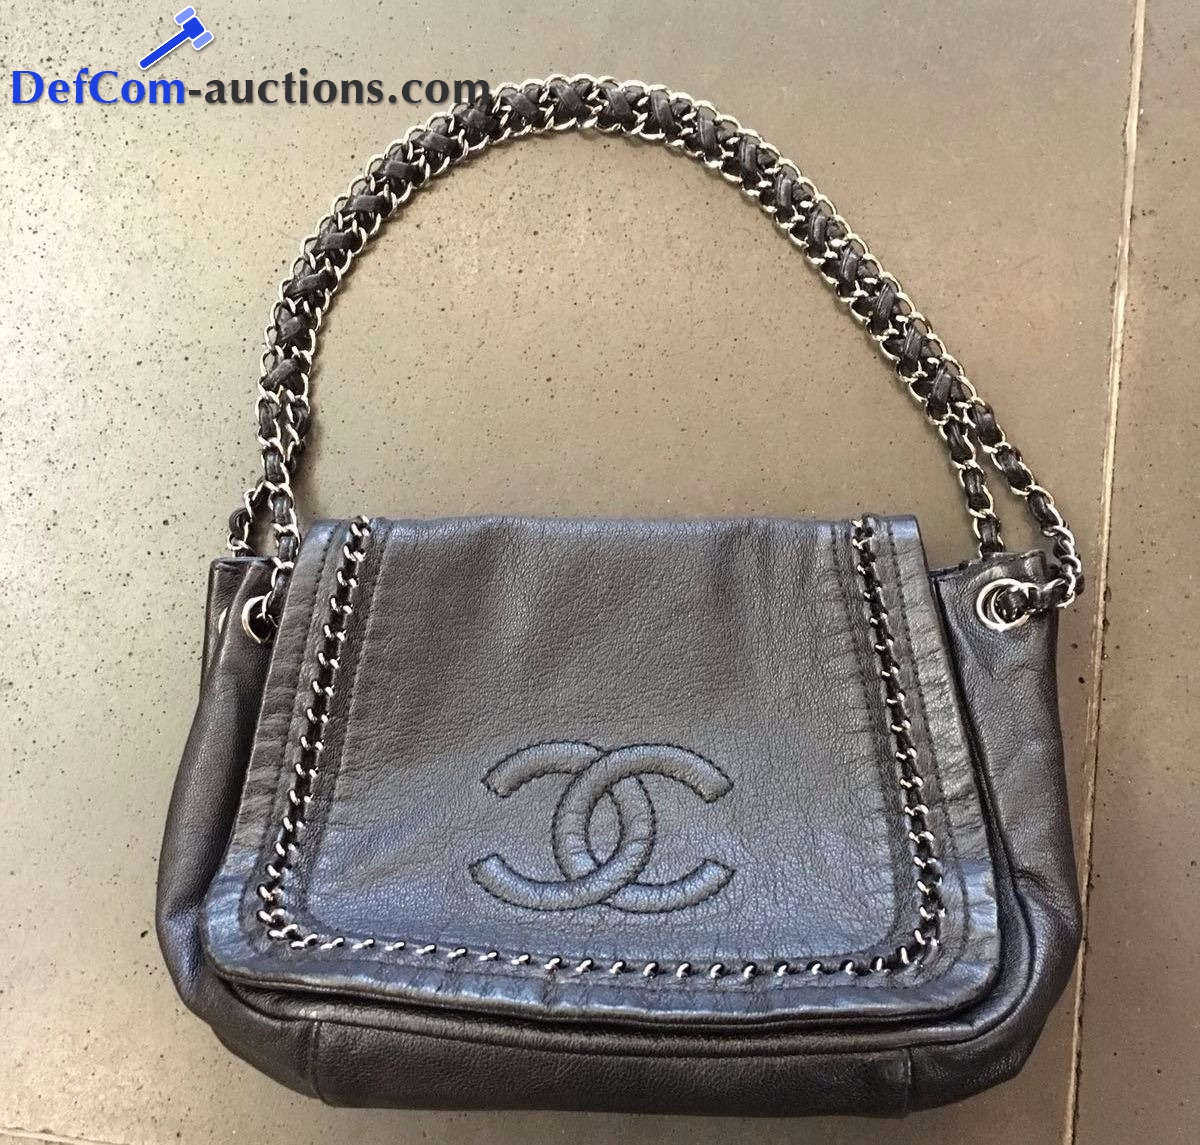 Online veiling Authentic designer brands pre-owned : Chanel, Louis Vuitton, Prada, Dolce & Gabbana, Gucci, Delvaux & others.